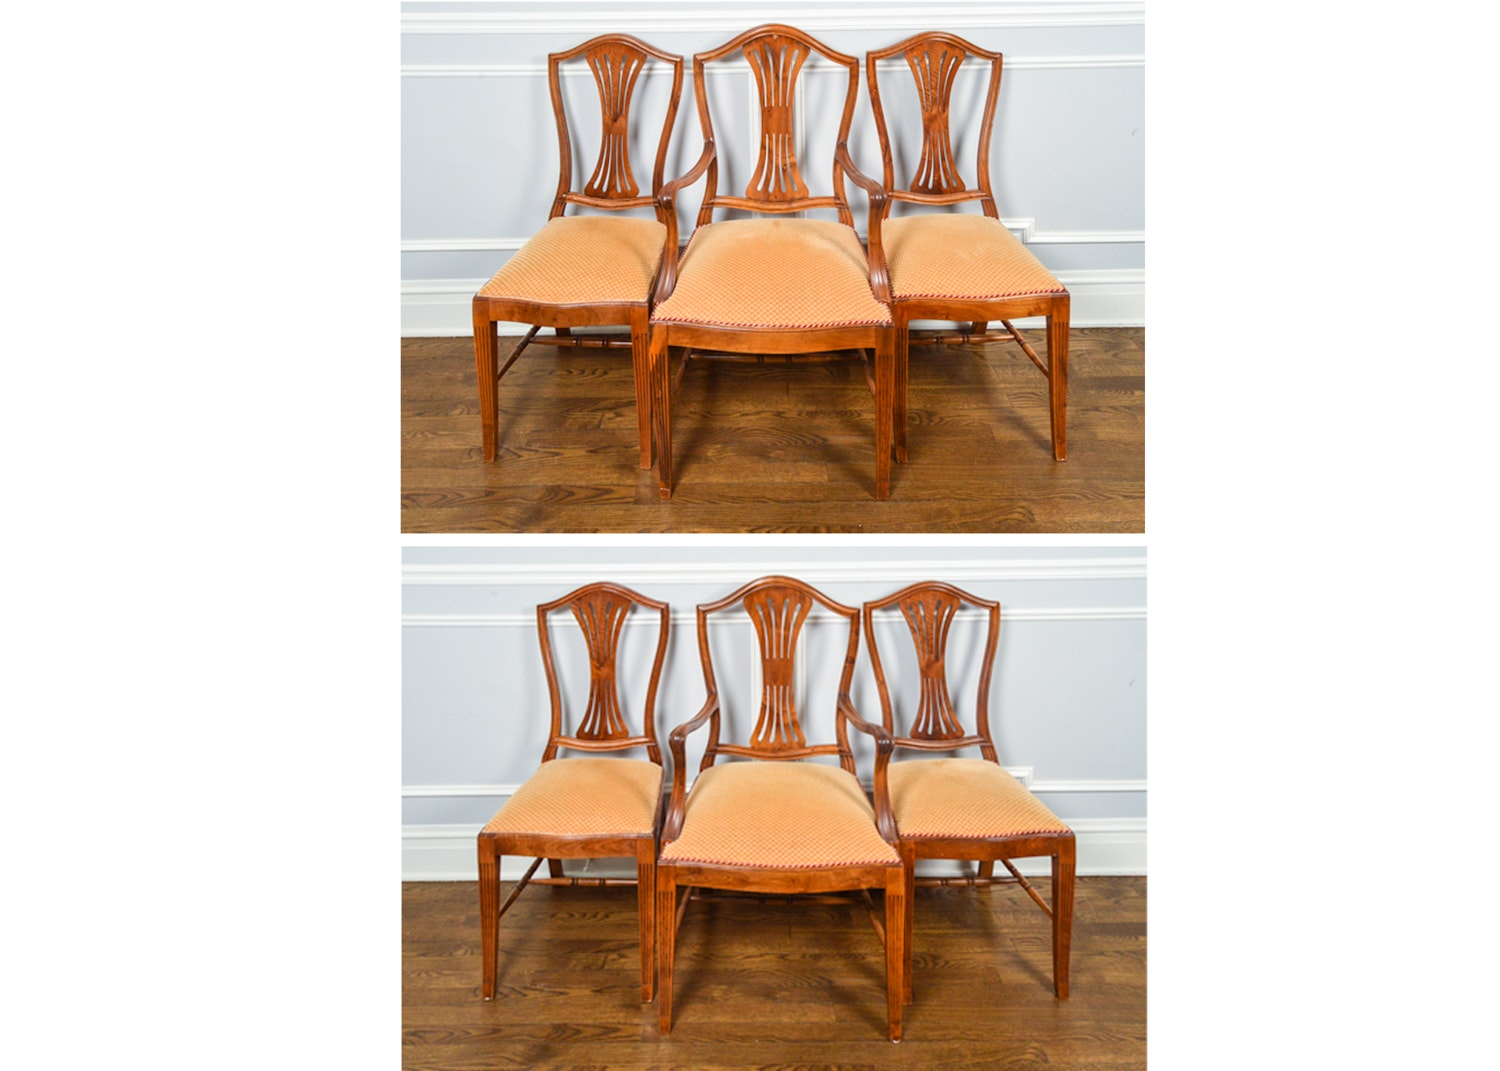 Six Hepplewhite Style Chairs in Solid Walnut